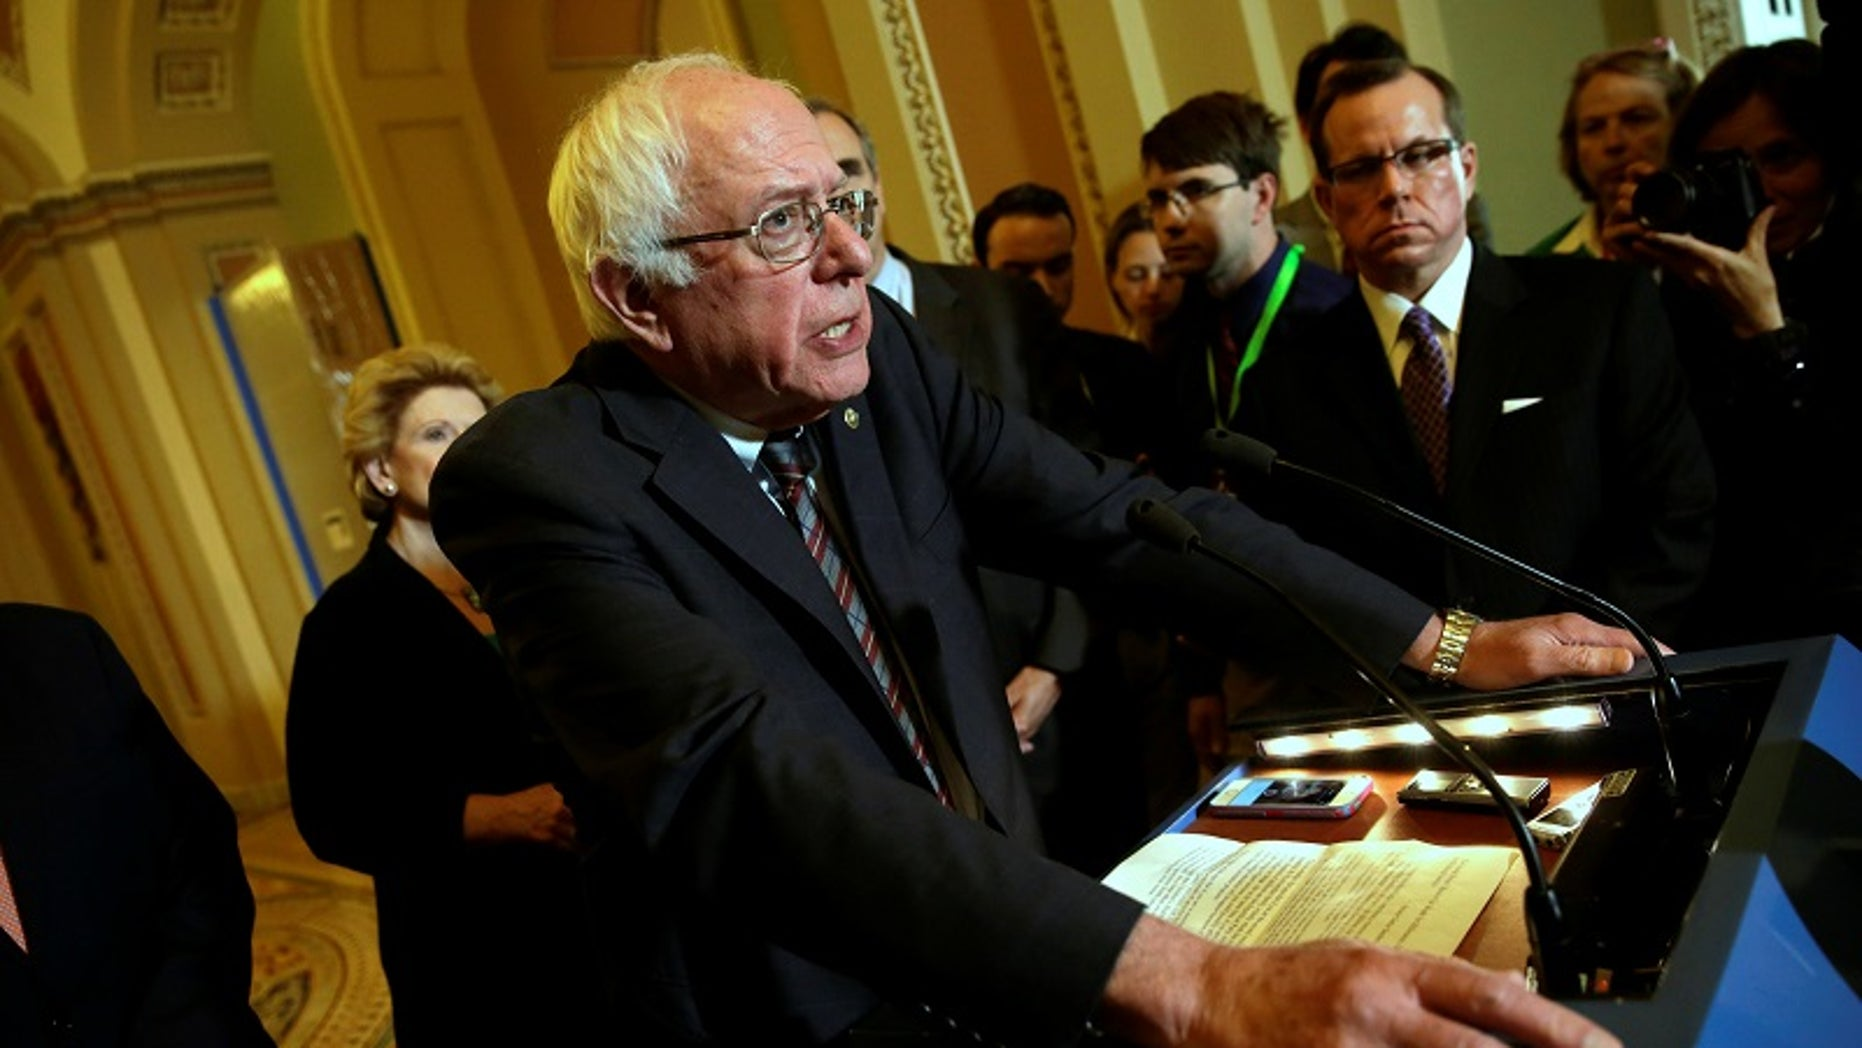 FILE -- Senator Bernie Sanders (D-VT) talks to the media on the president's FY2018 budget proposal on Capitol Hill in Washington, U.S., May 23, 2017.